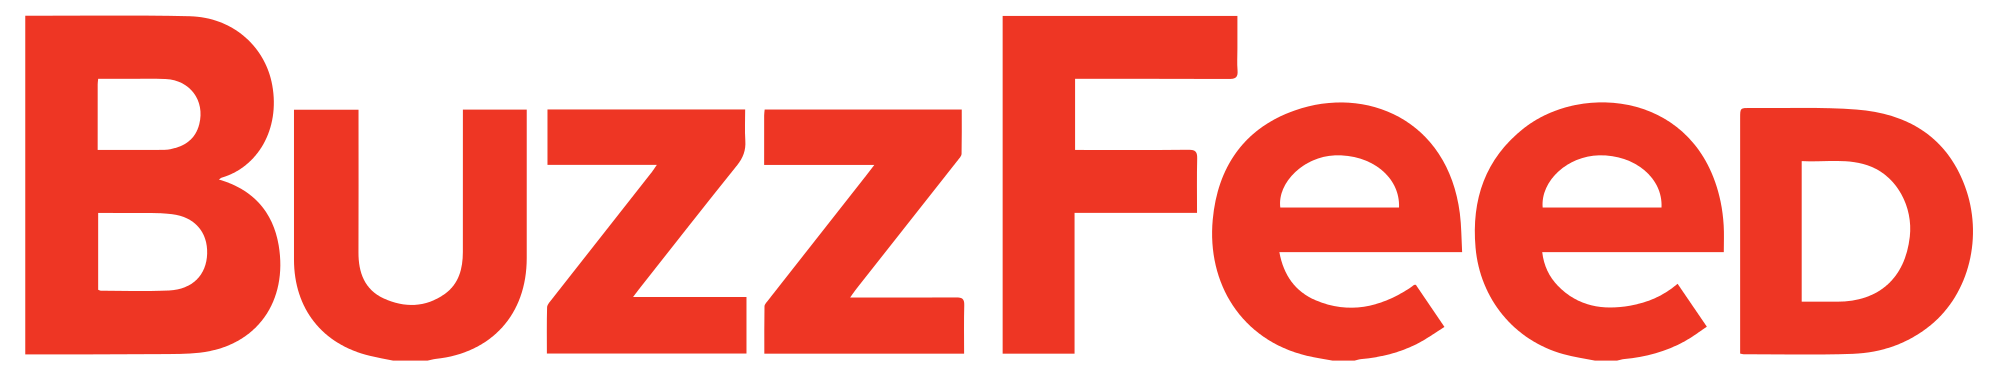 buzz_feed_logo.png